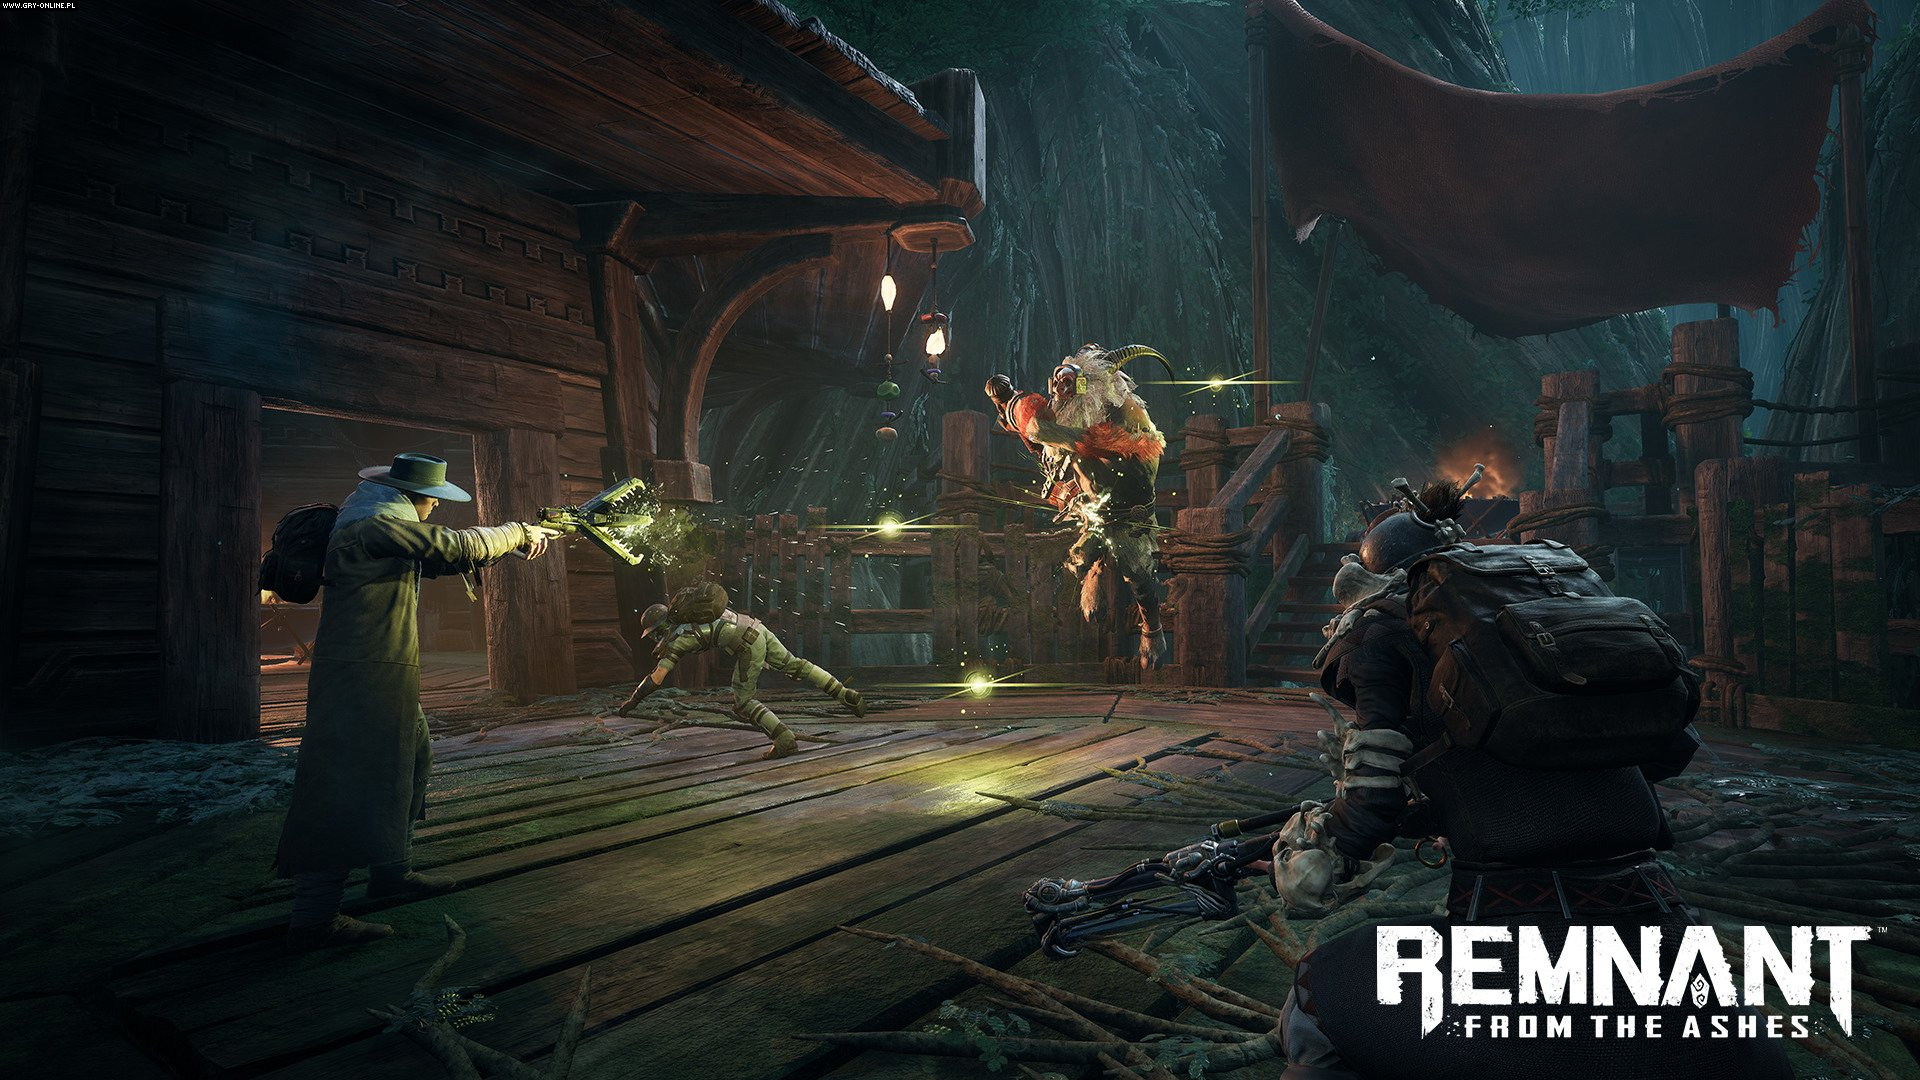 Remnant: From the Ashes PC, PS4, XONE Gry Screen 2/21, Gunfire Games, Perfect World Entertainment